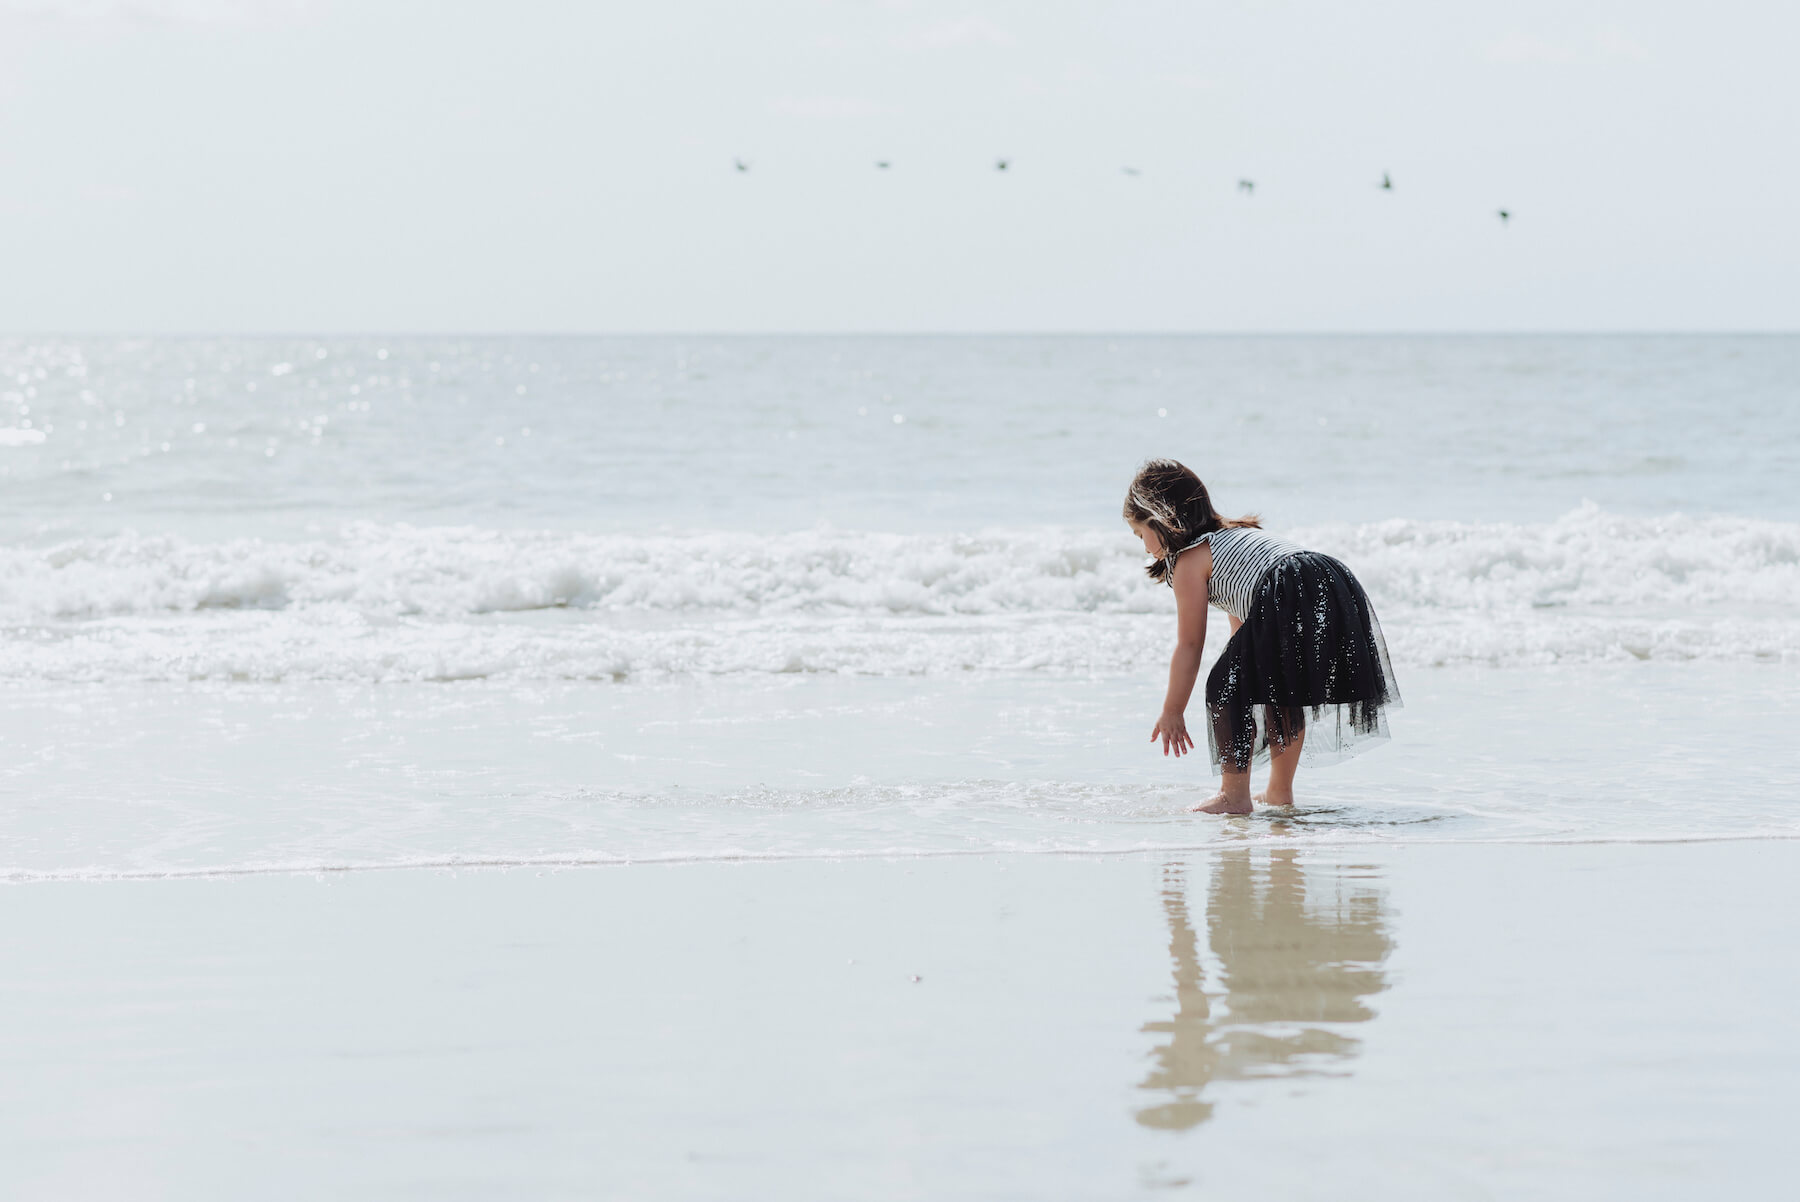 a girl bending over and having fun in the water on a beach in Savannah, Georgia, United States of America